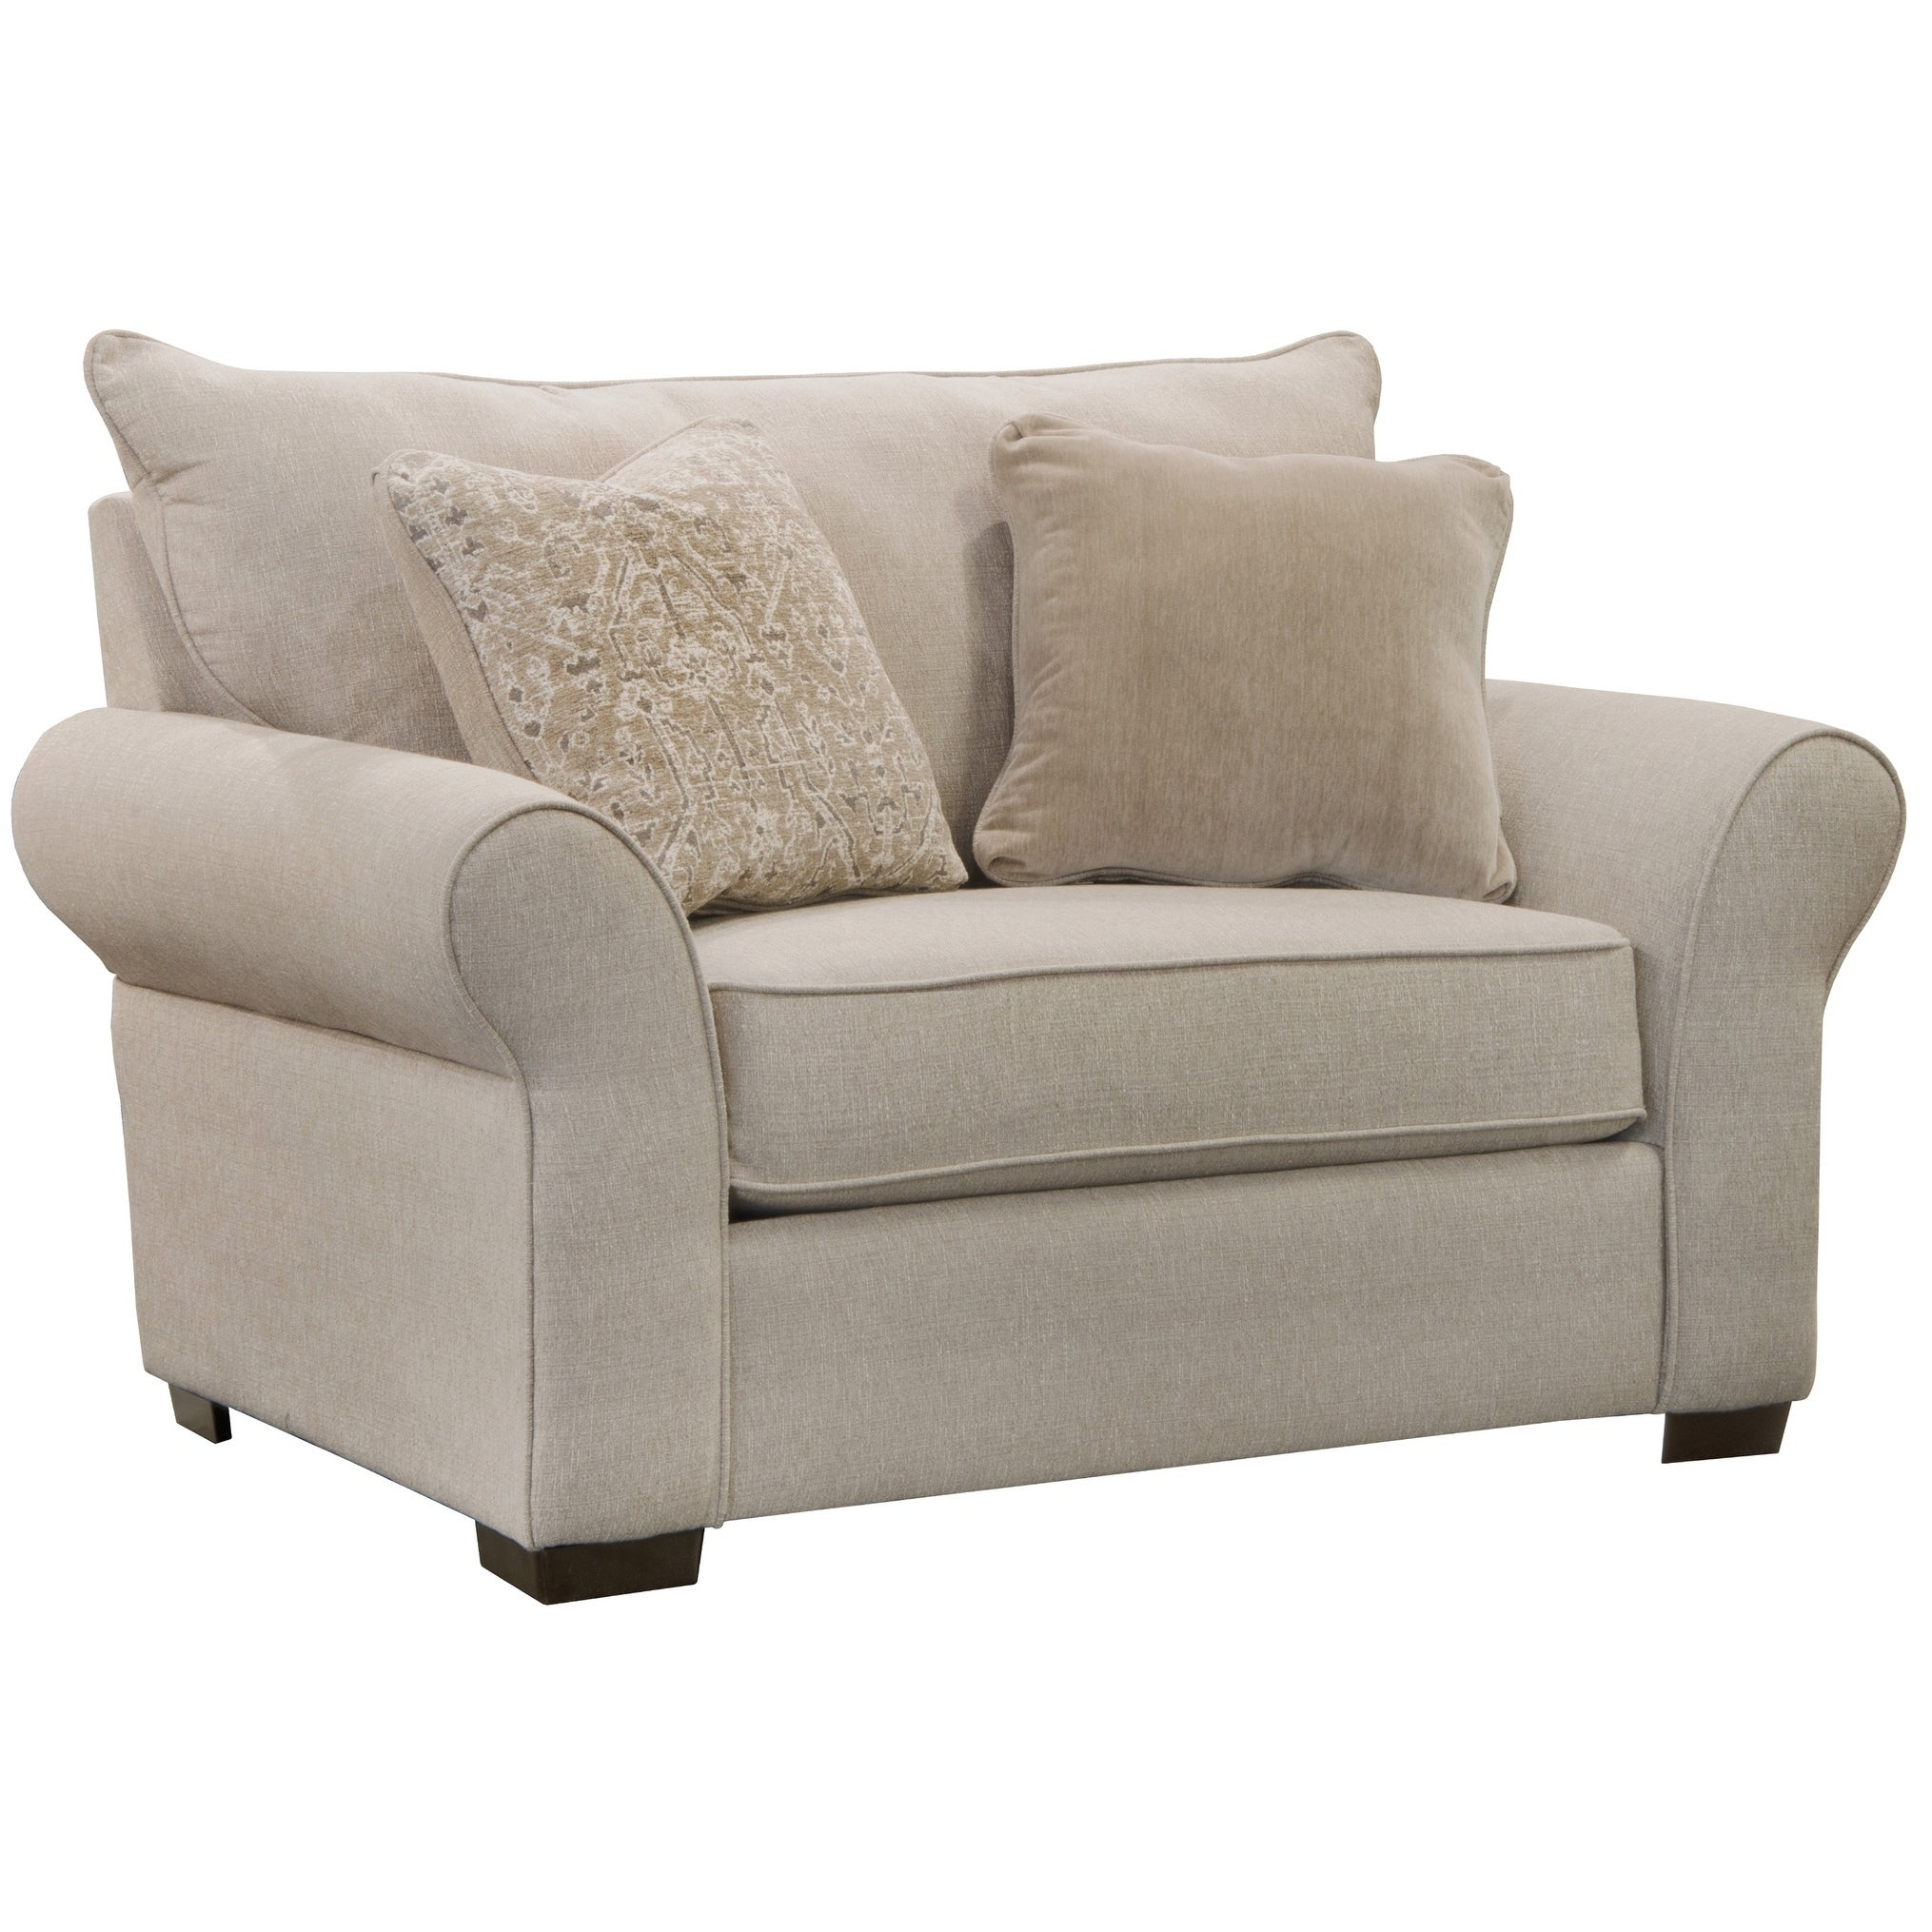 Batson Living Room Chair On Sale Overstock 29593347